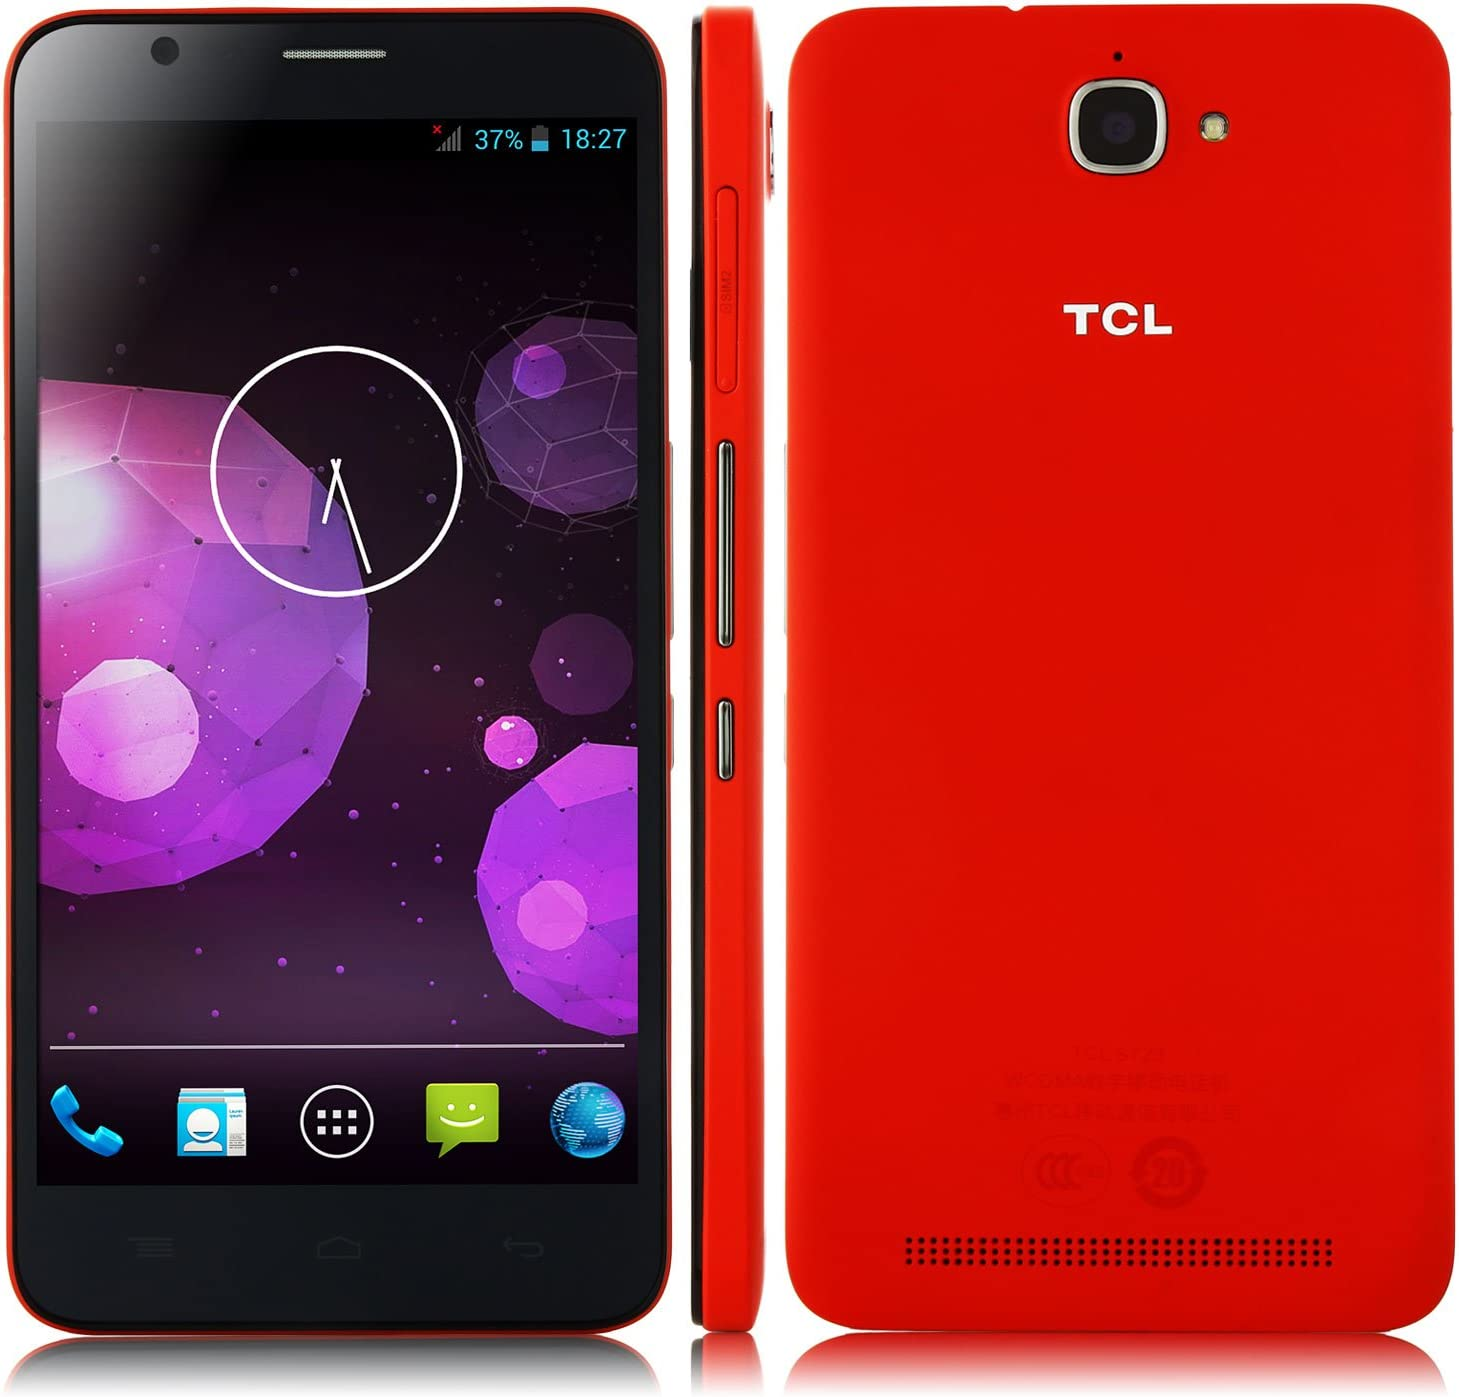 Promoción* 5.5 Pulgada TCL S720 Smartphone Android 4.2 MTK6592M 3G ...